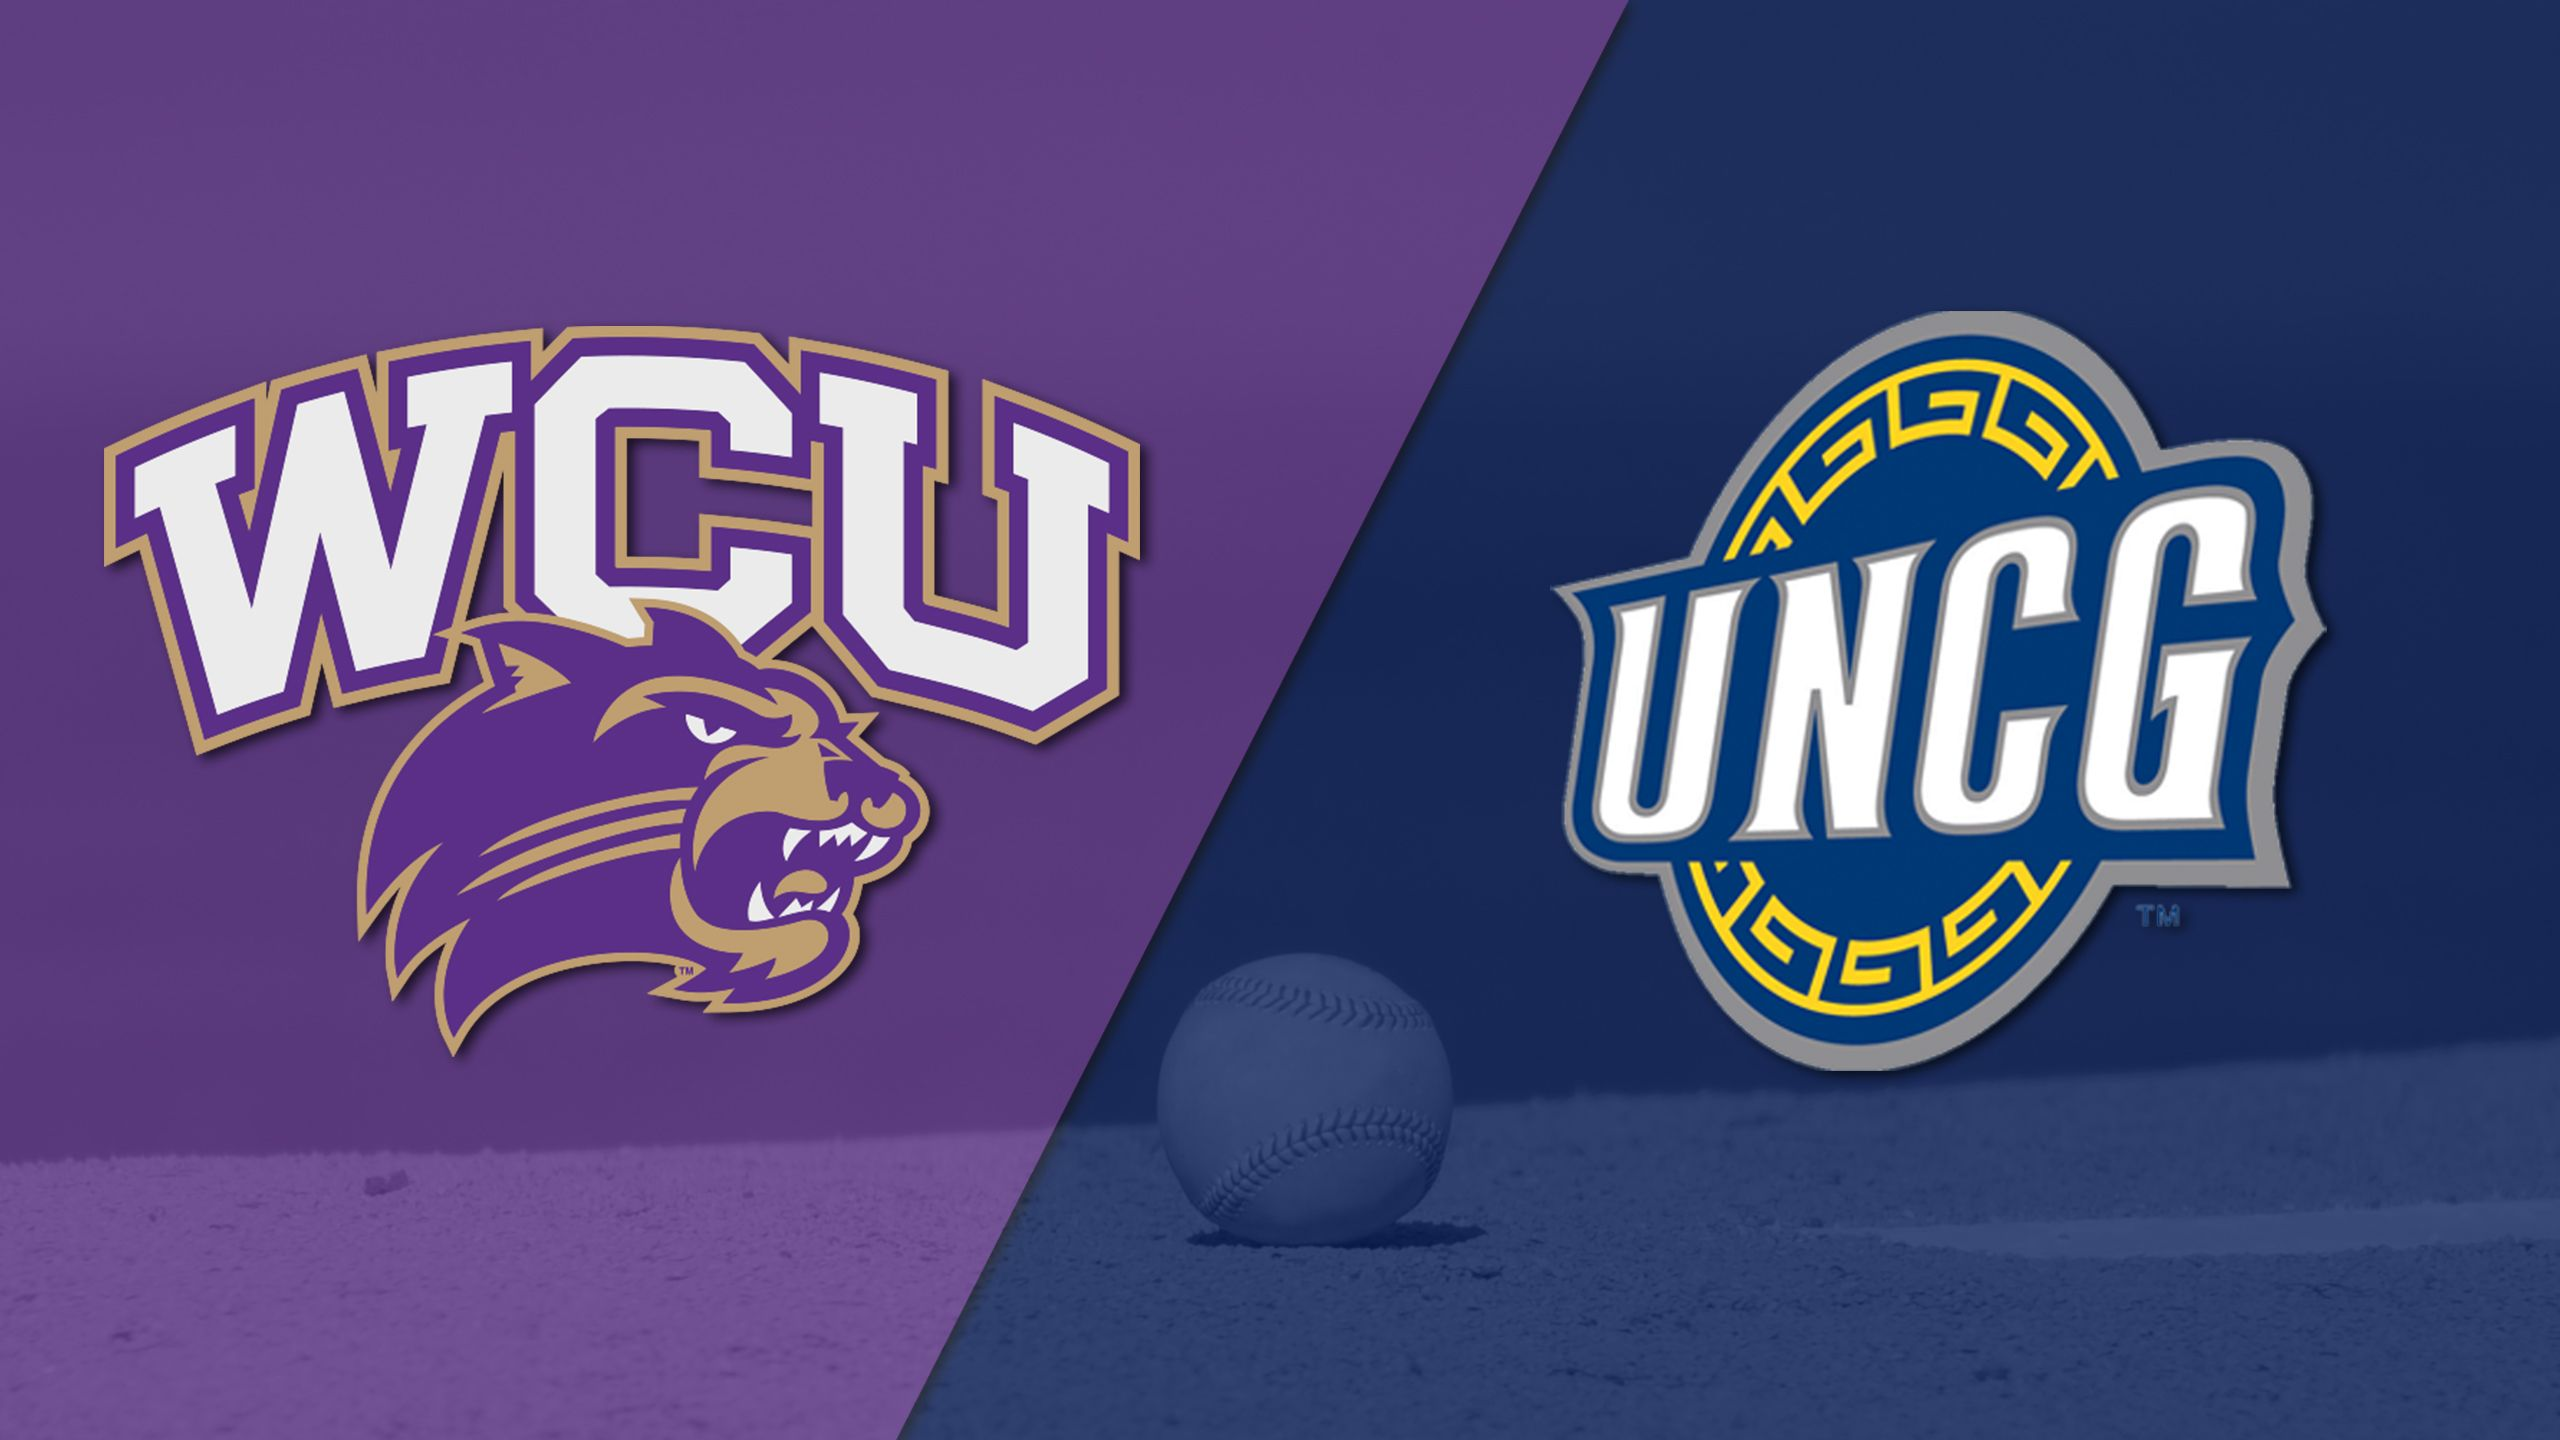 Western Carolina vs. UNC Greensboro